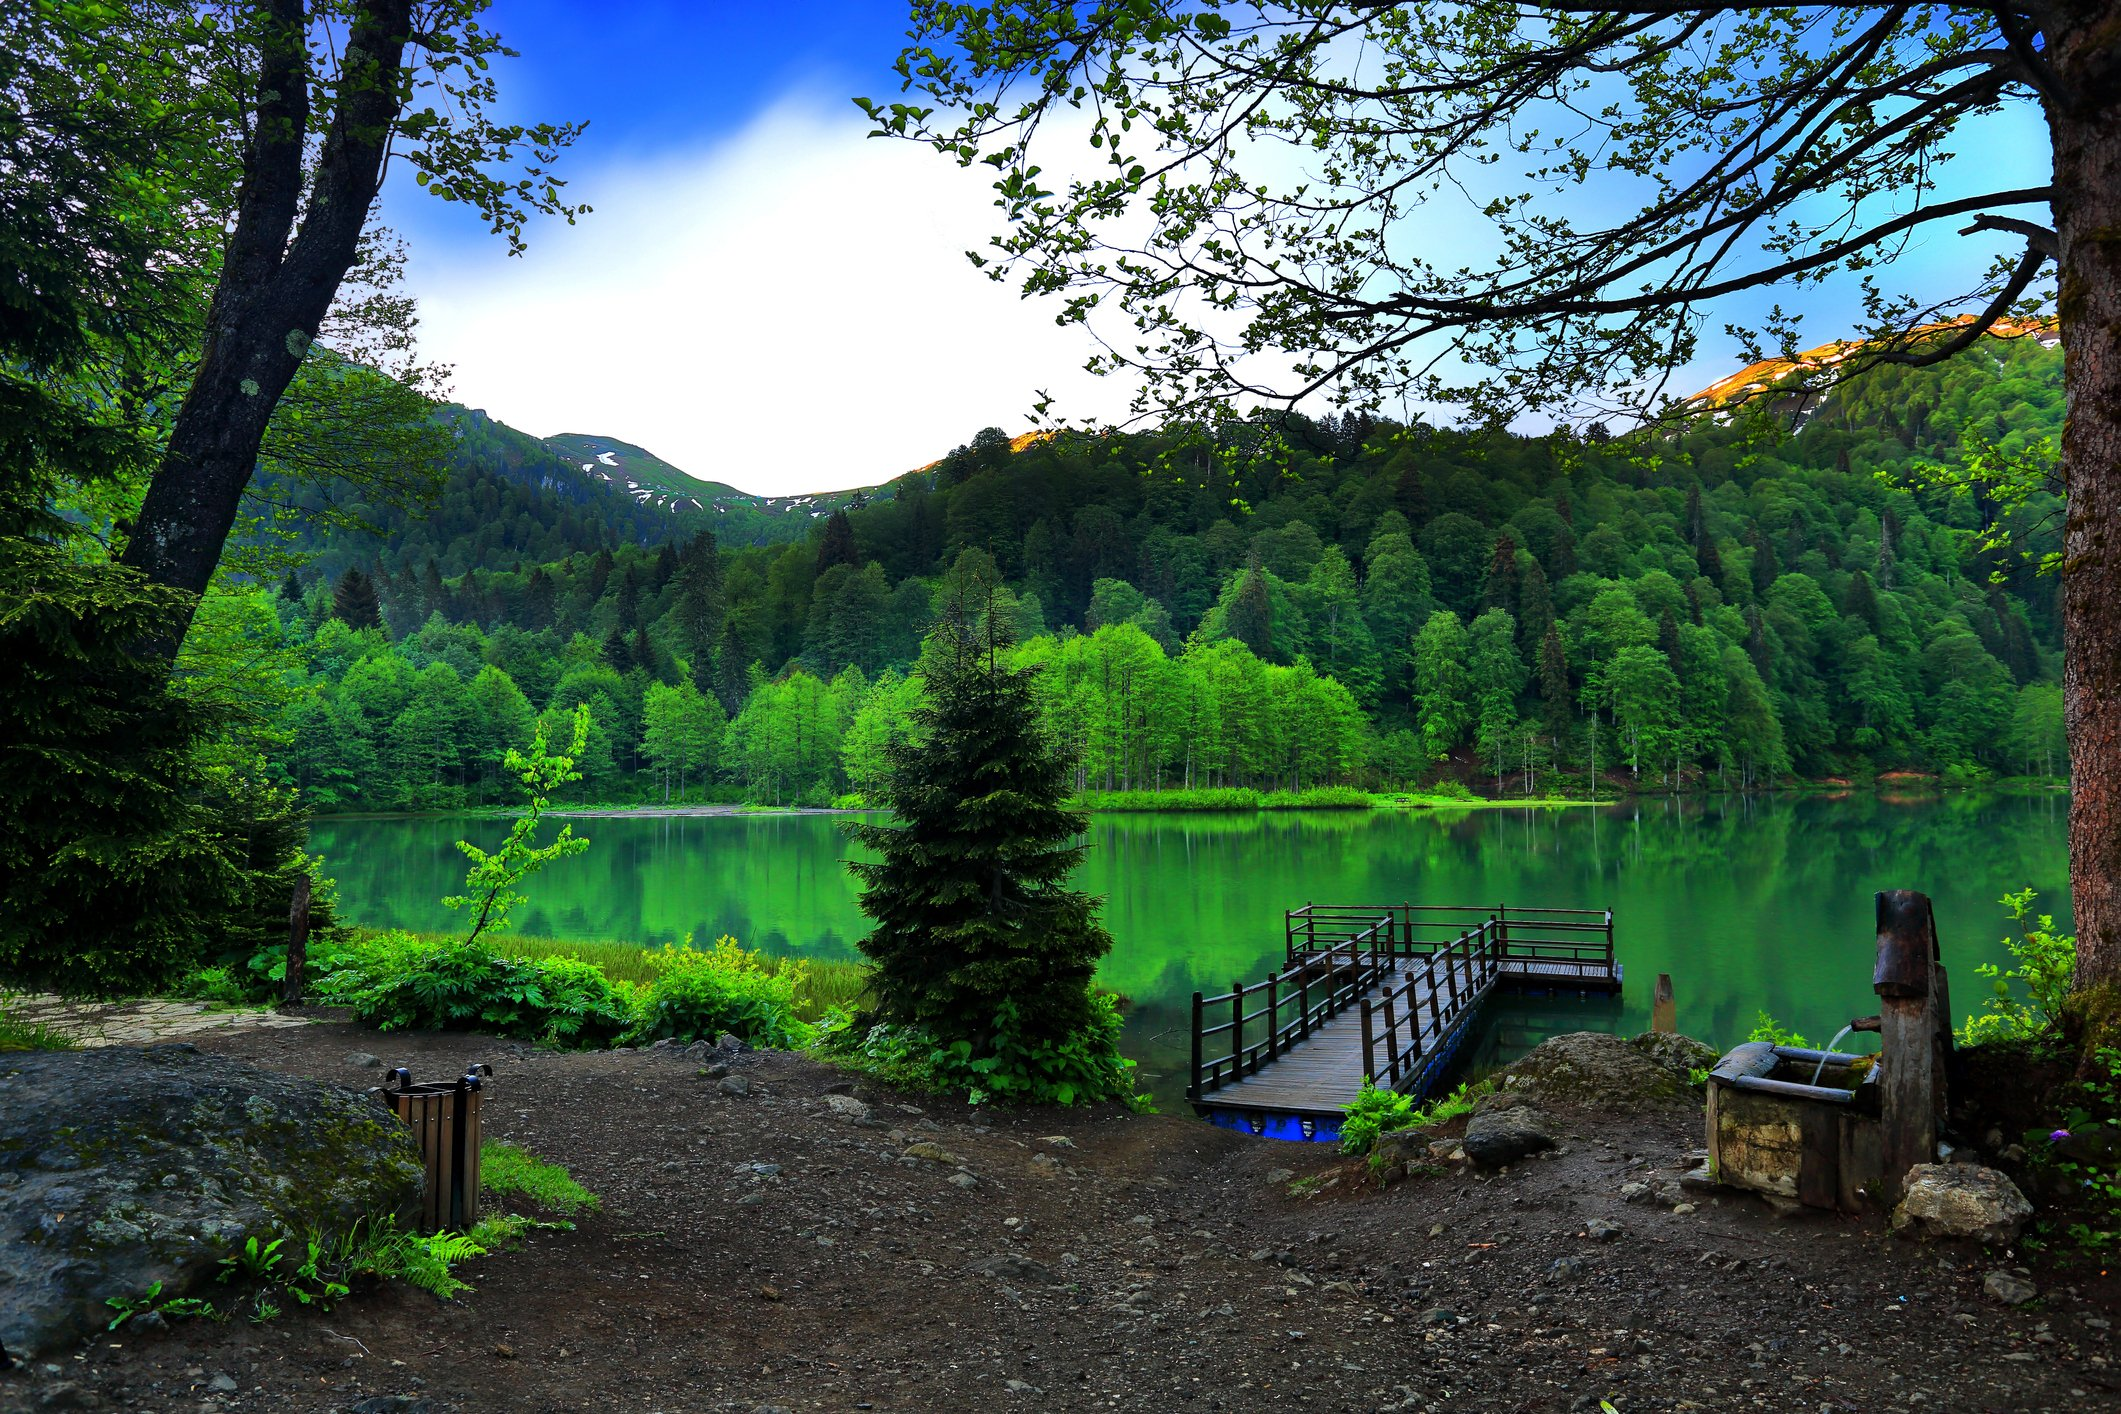 The trail in Artvin is expected to be Turkey's longest. (iStock Photo)